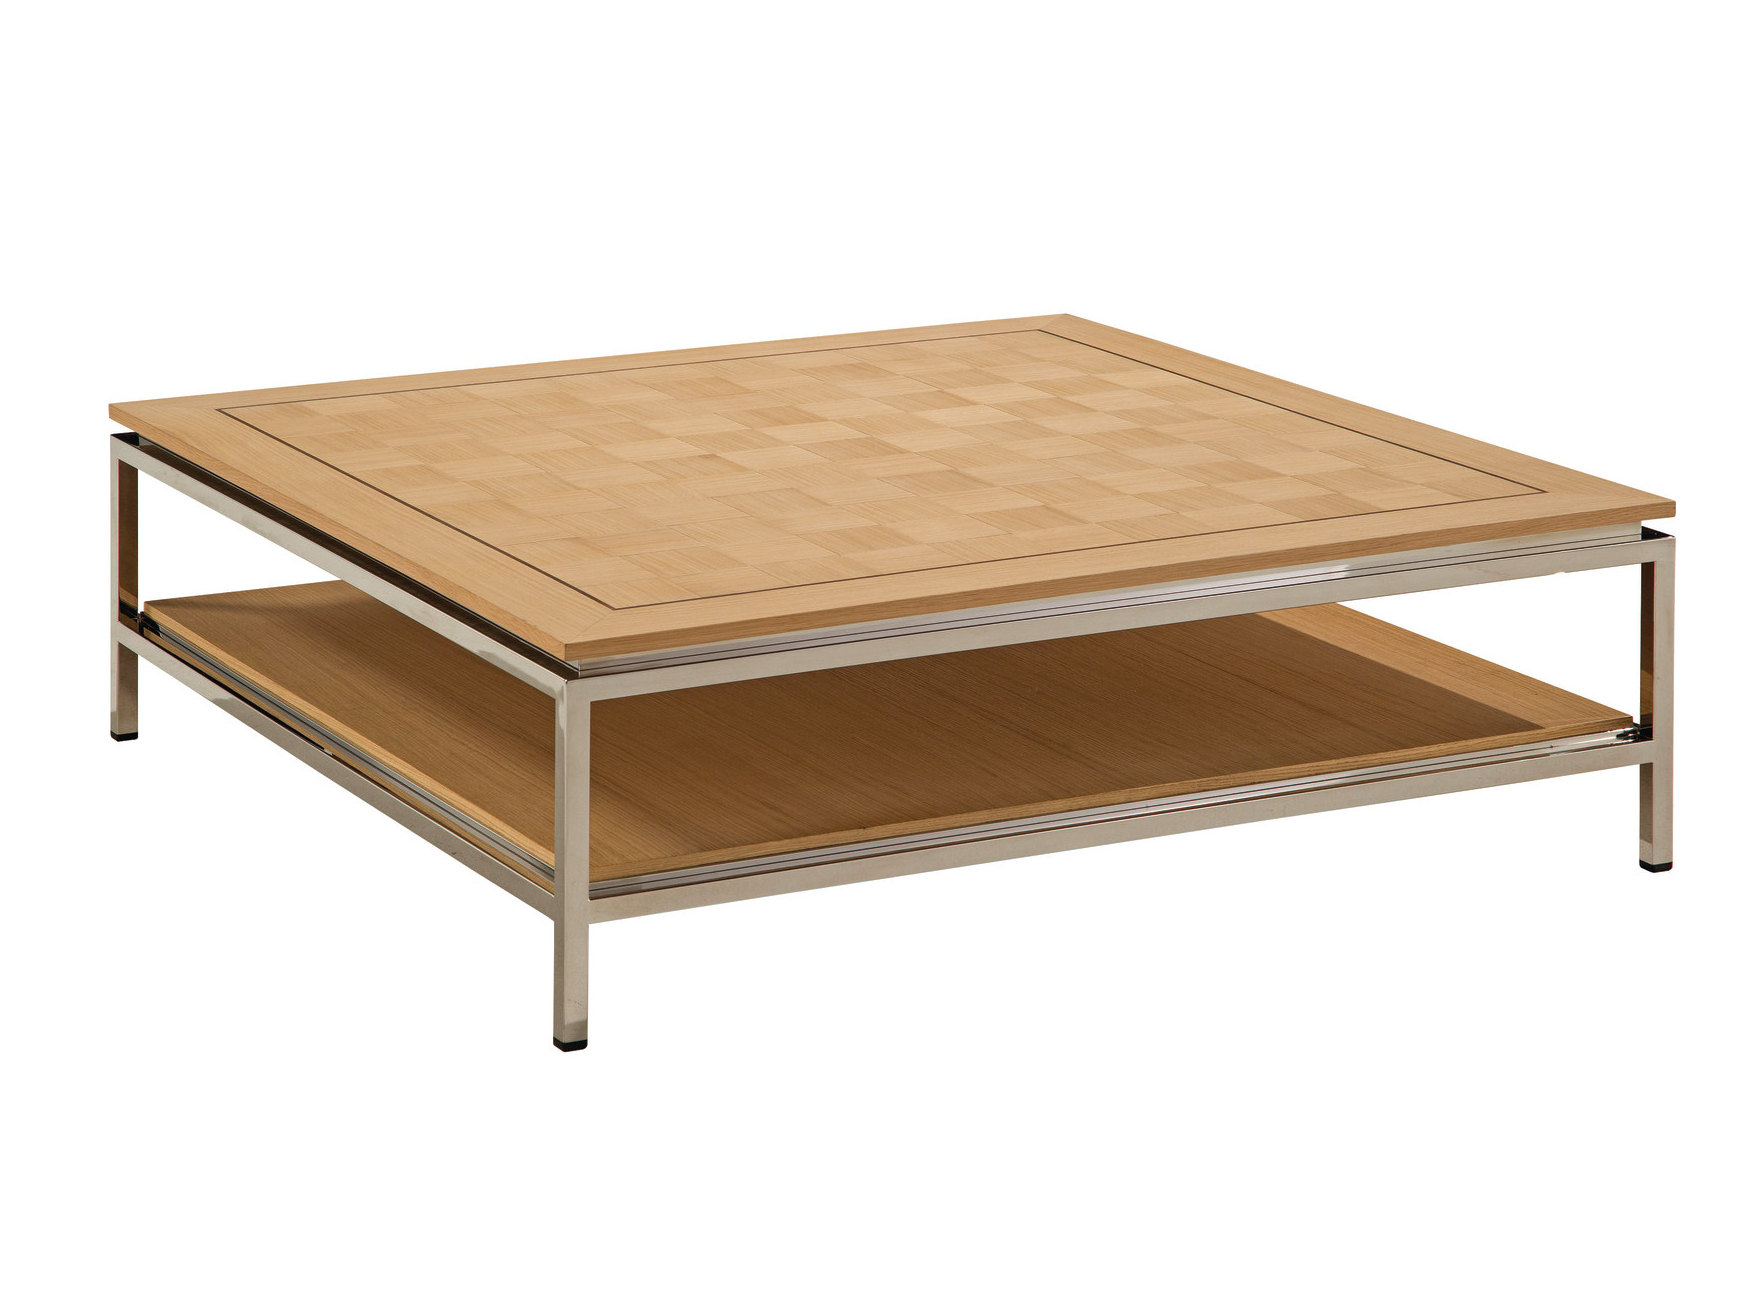 Epoq square coffee table epoq collection by roche bobois design pierre dubois aim c cil Roche bobois coffee table